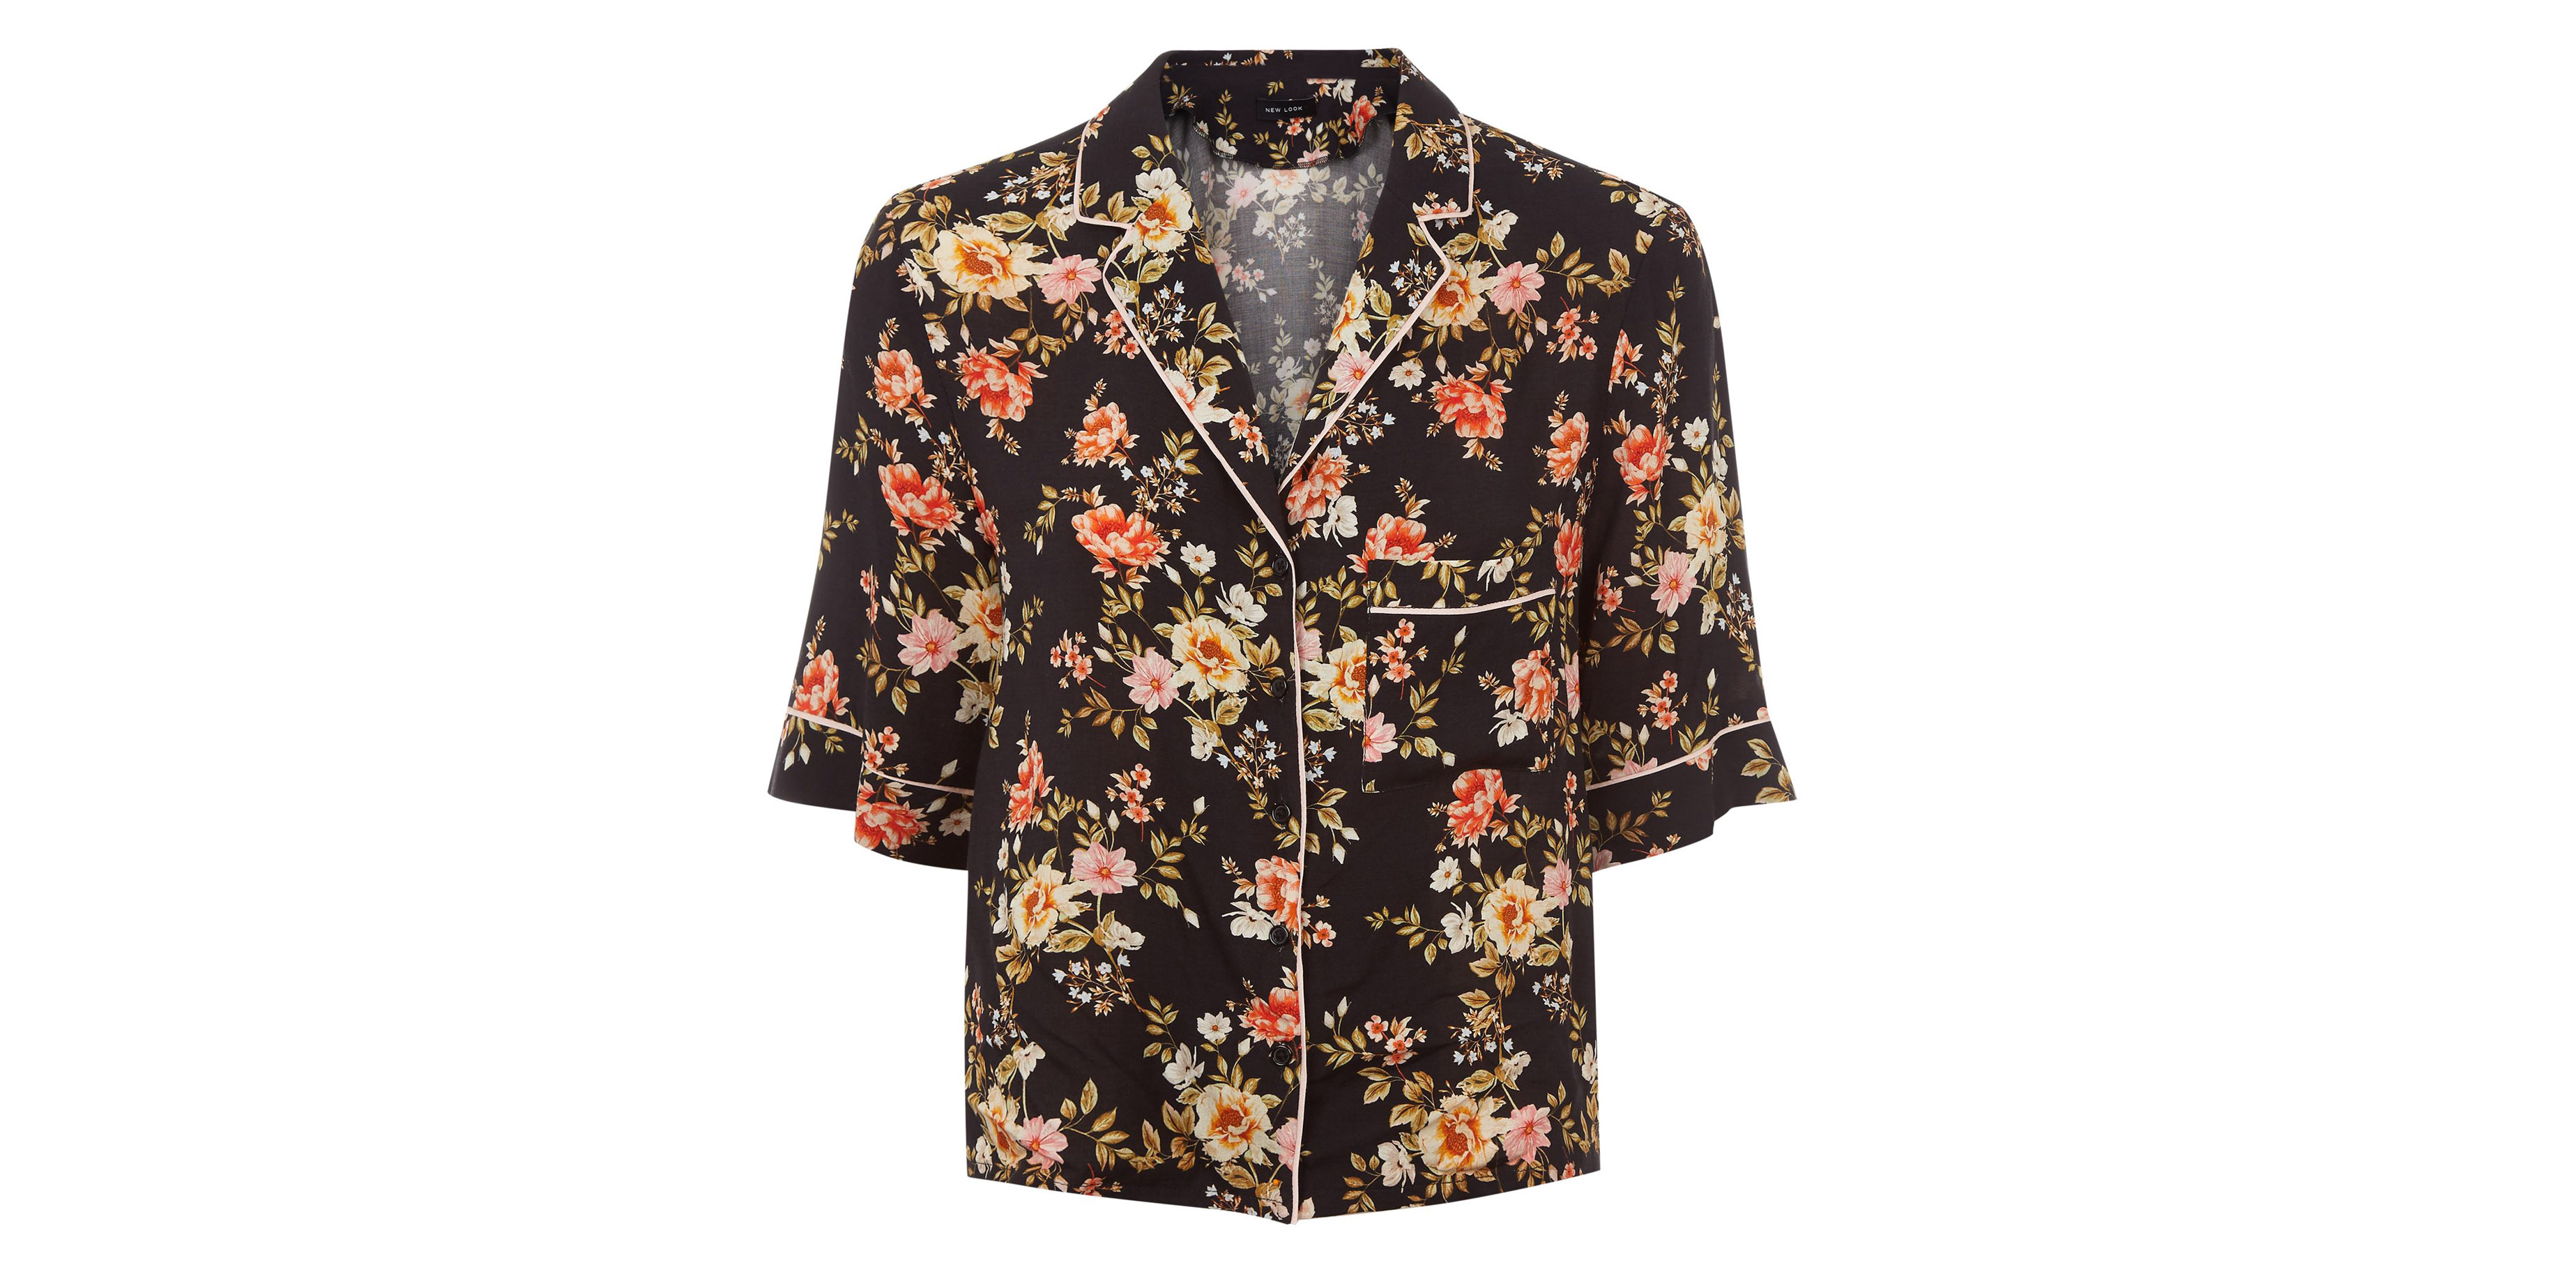 New Look Black Floral Pyjama-Style Shirt